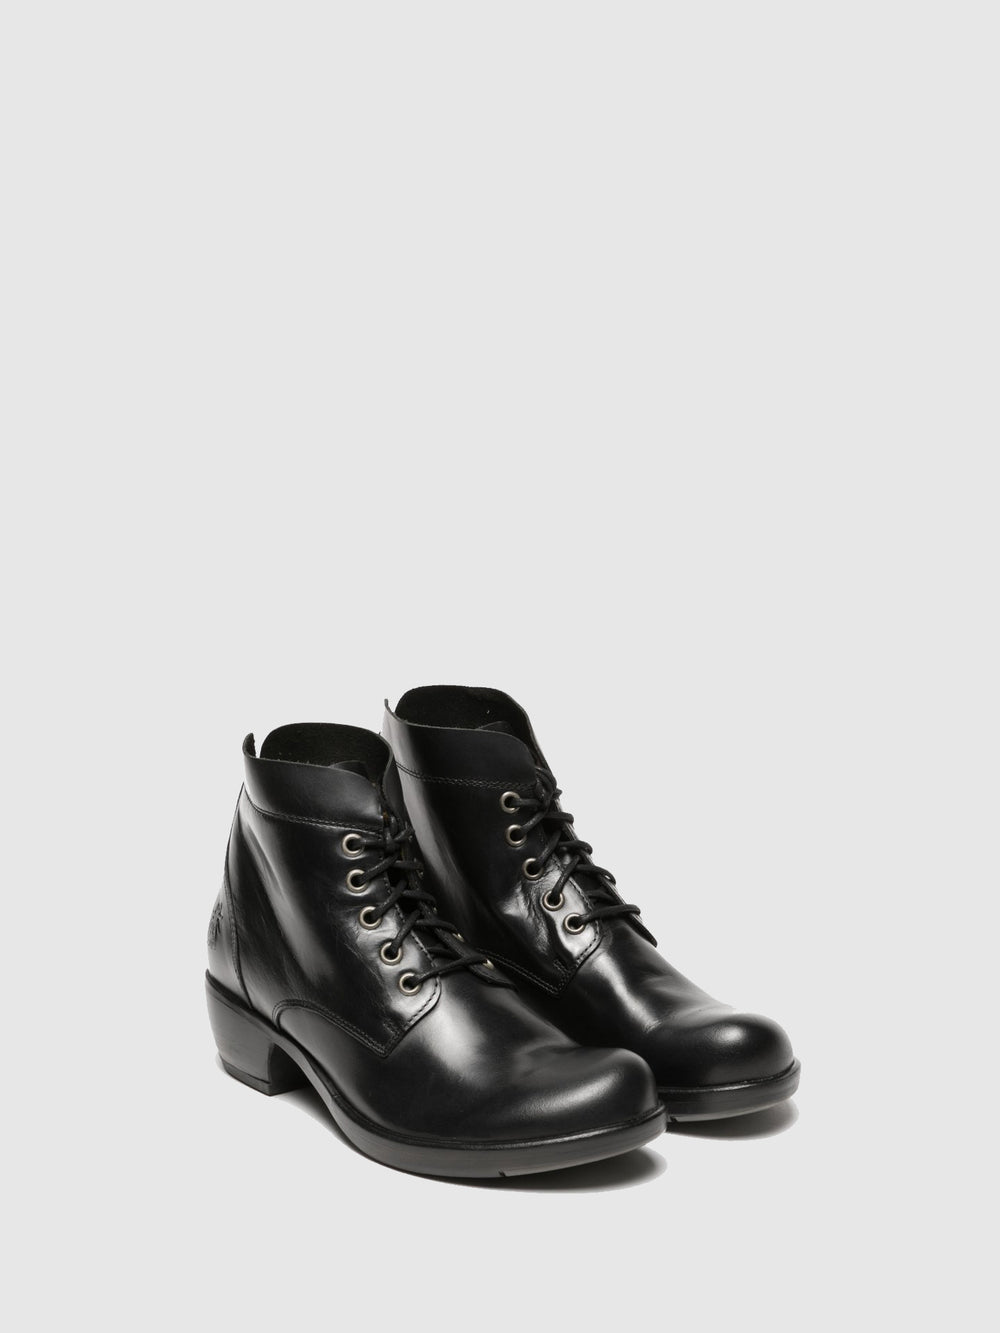 Lace-up Ankle Boots MESU780FLY BLACK